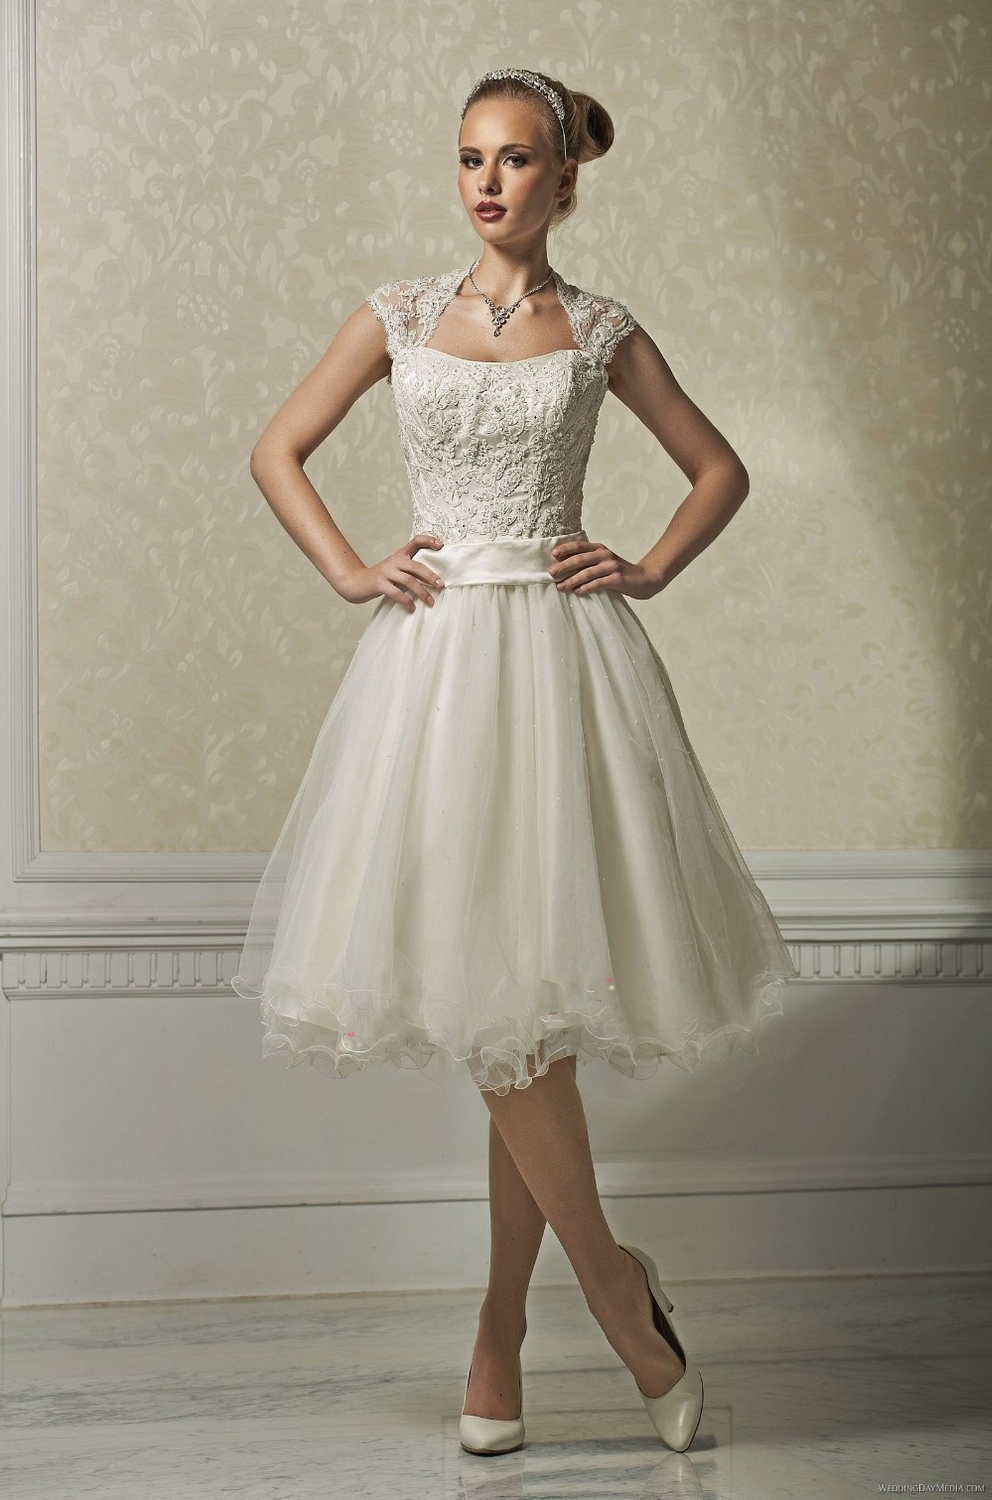 Short Ivory Wedding Dresses  Cocktail Dresses 2016. Top Wedding Bridesmaid Dresses Reviews. Destination Wedding Bridesmaid Dresses Canada. Vintage Wedding Dresses Randalstown. Indian Wedding Outfits Durban. Gorgeous Simple Wedding Dresses. Wedding Dress Lace Knee Length. Wedding Dresses 2014 Fit And Flare. Men's Wear For Country Wedding